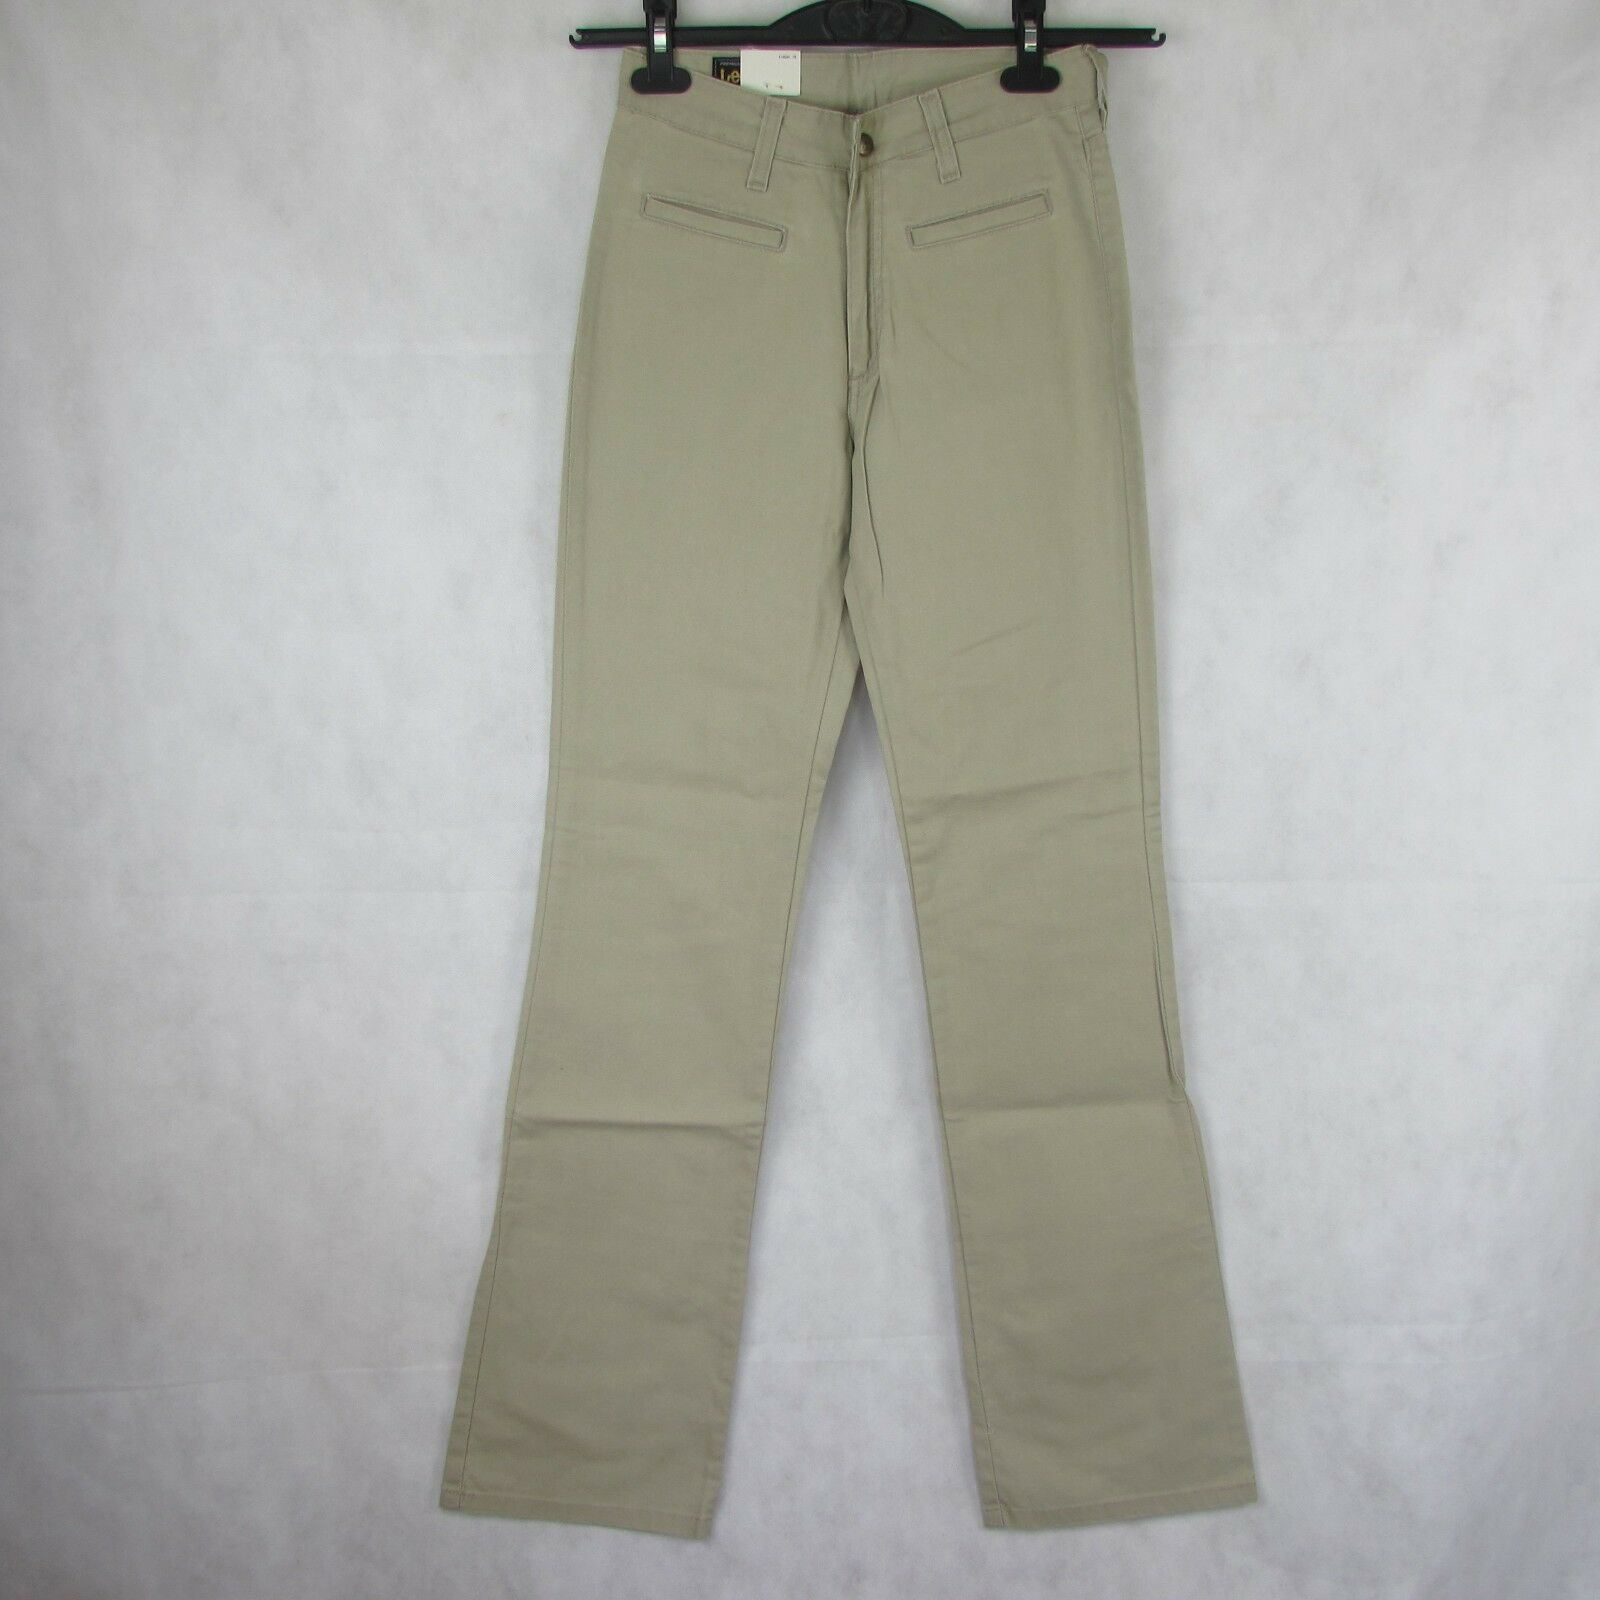 VTG LEE RIDERS BEIGE NWT W28 L33 WOMENS JEANS STRETCH SLIM FIT ZIP FLY BOOTCUT